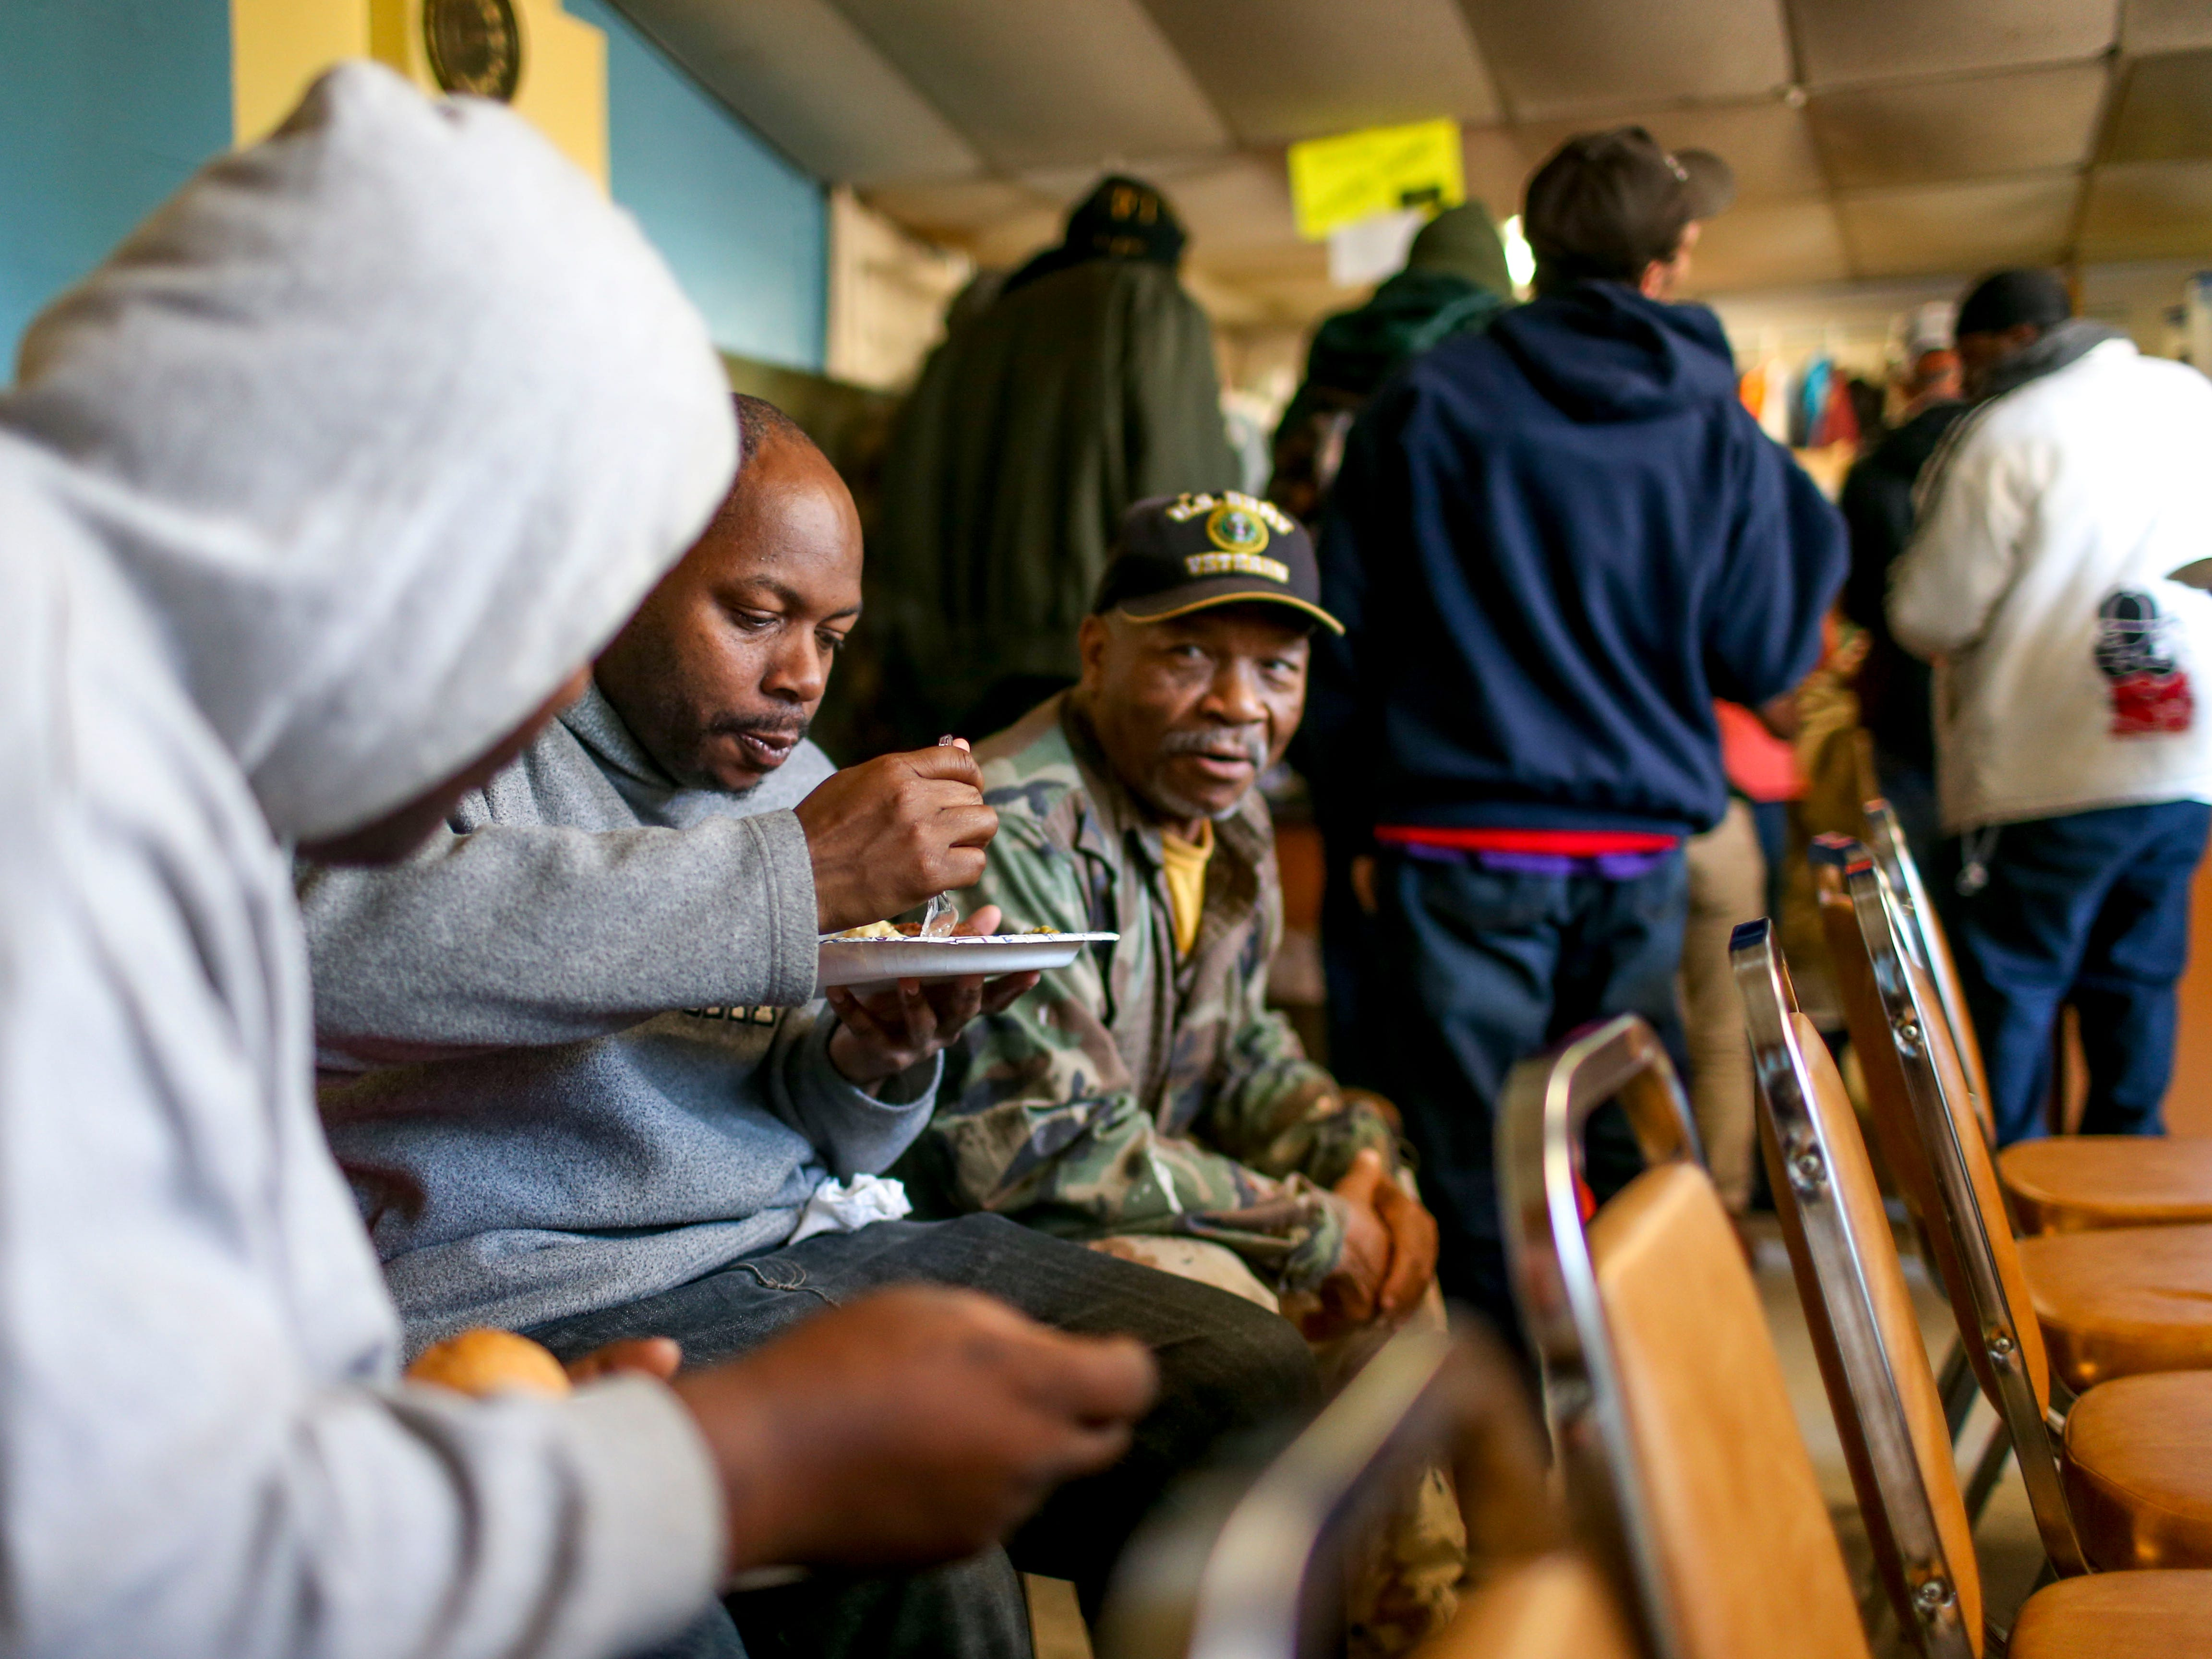 Visitors to the soup kitchen joke around with one another while eating a hot meal at the annual Thanksgiving meal put on by Safe Harbor Day Mission in Jackson, Tenn., on Wednesday, Nov. 21, 2018.